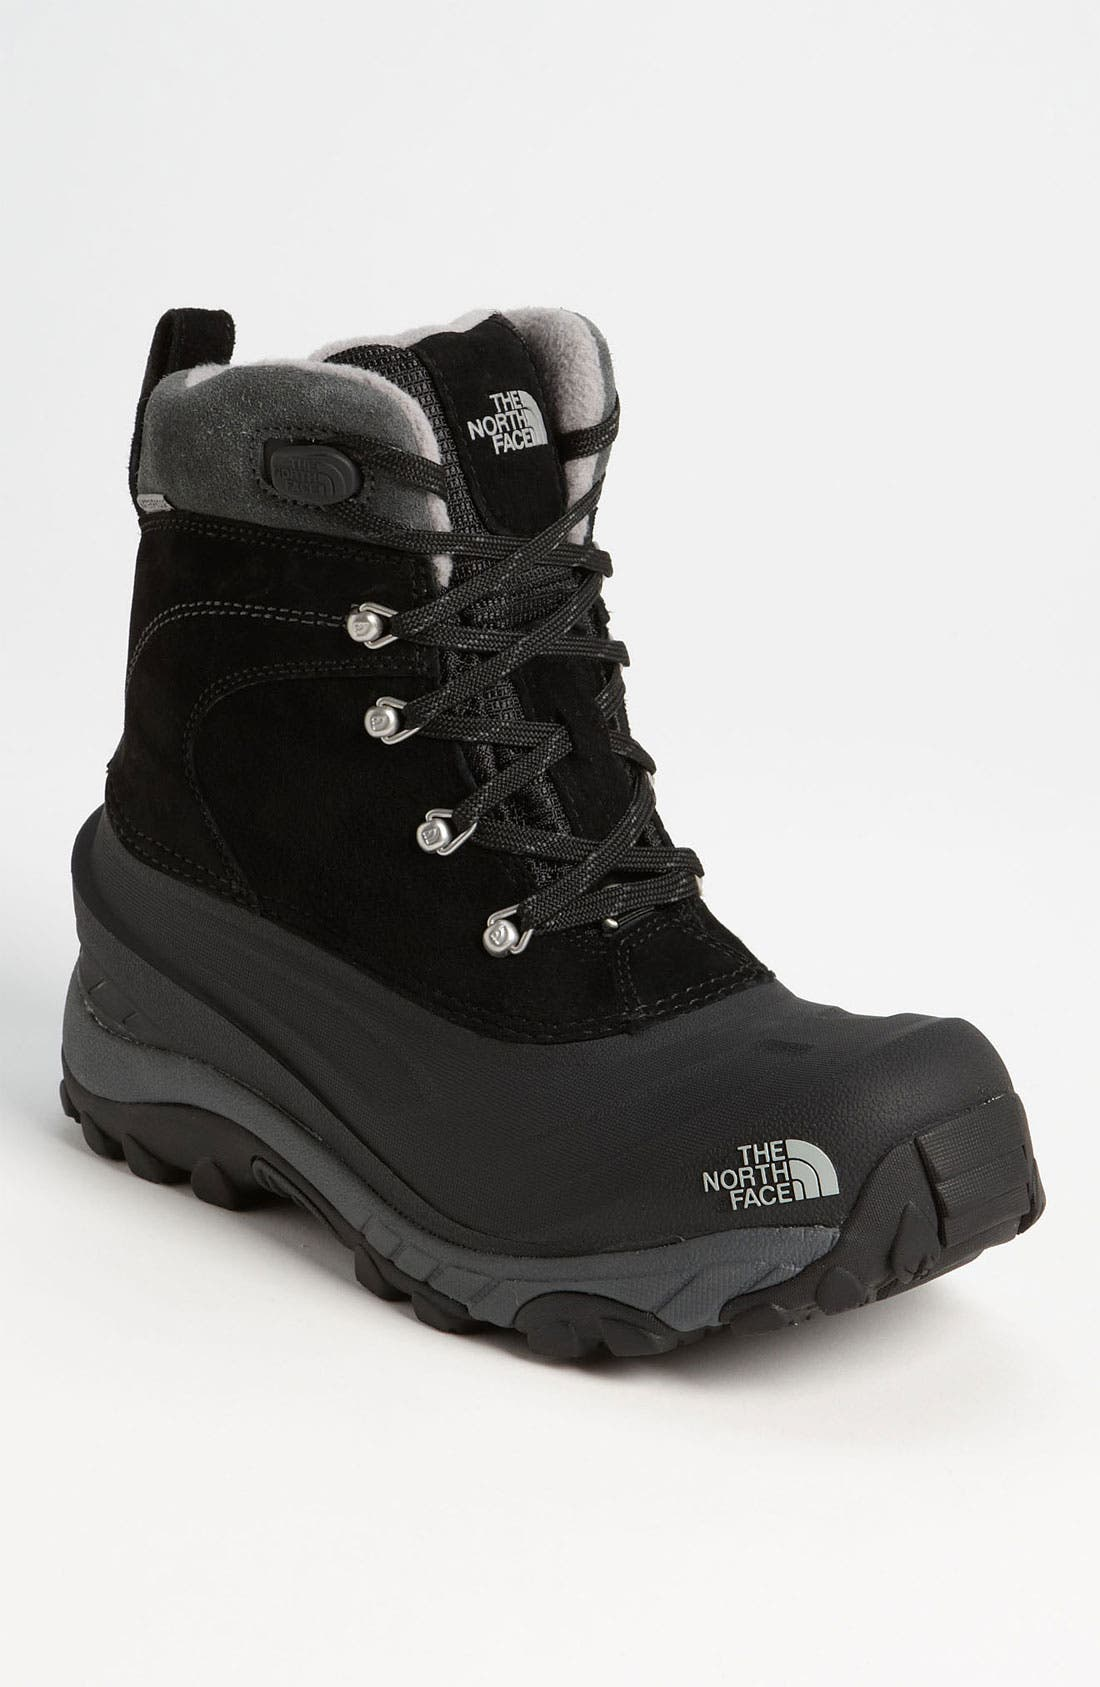 Alternate Image 1 Selected - The North Face Chilkat II Snow Boot (Men)